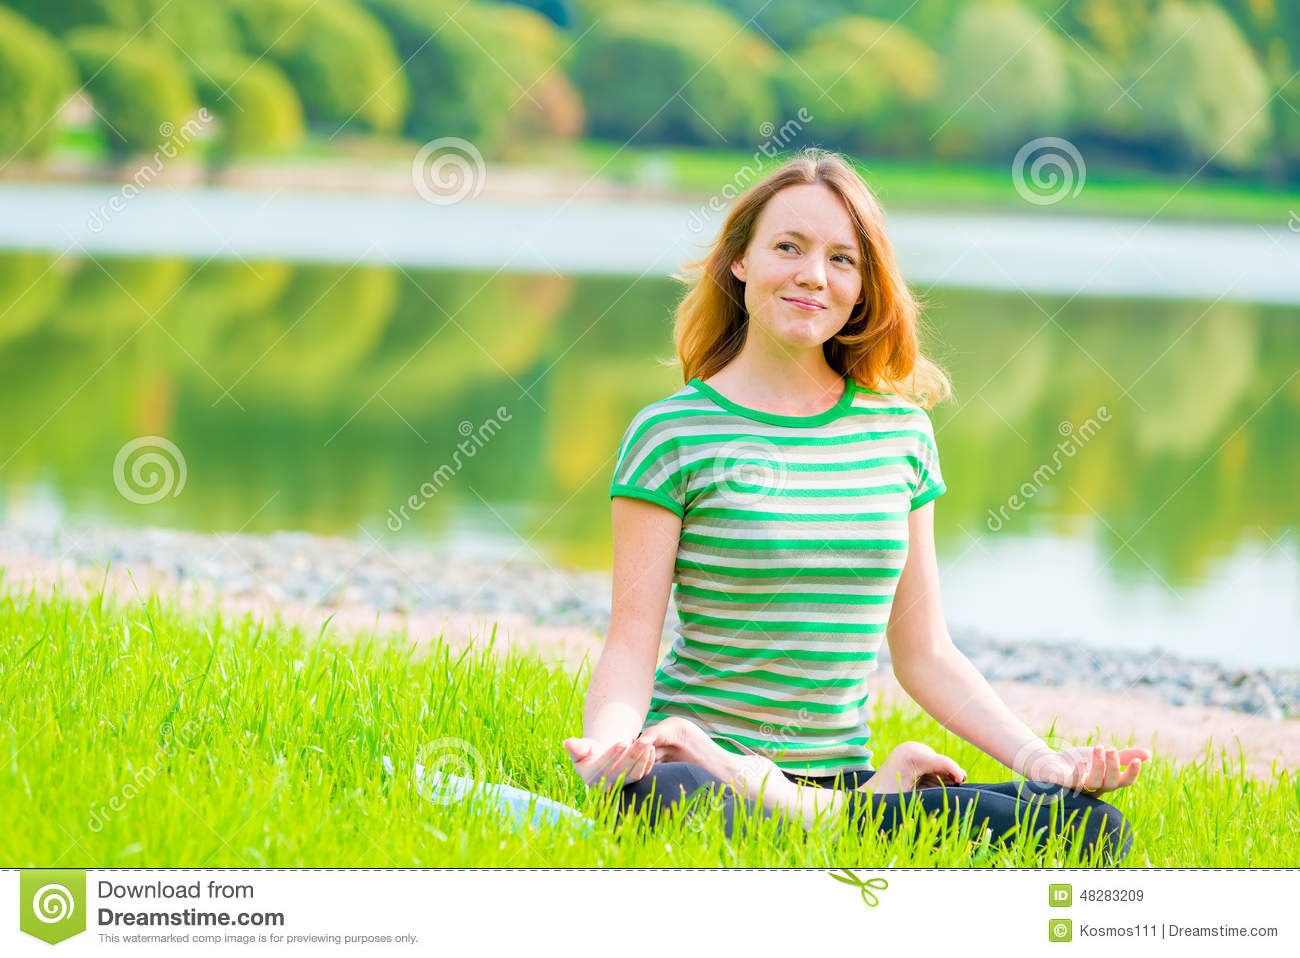 Smiling girl-yogi performs exercises in a green park